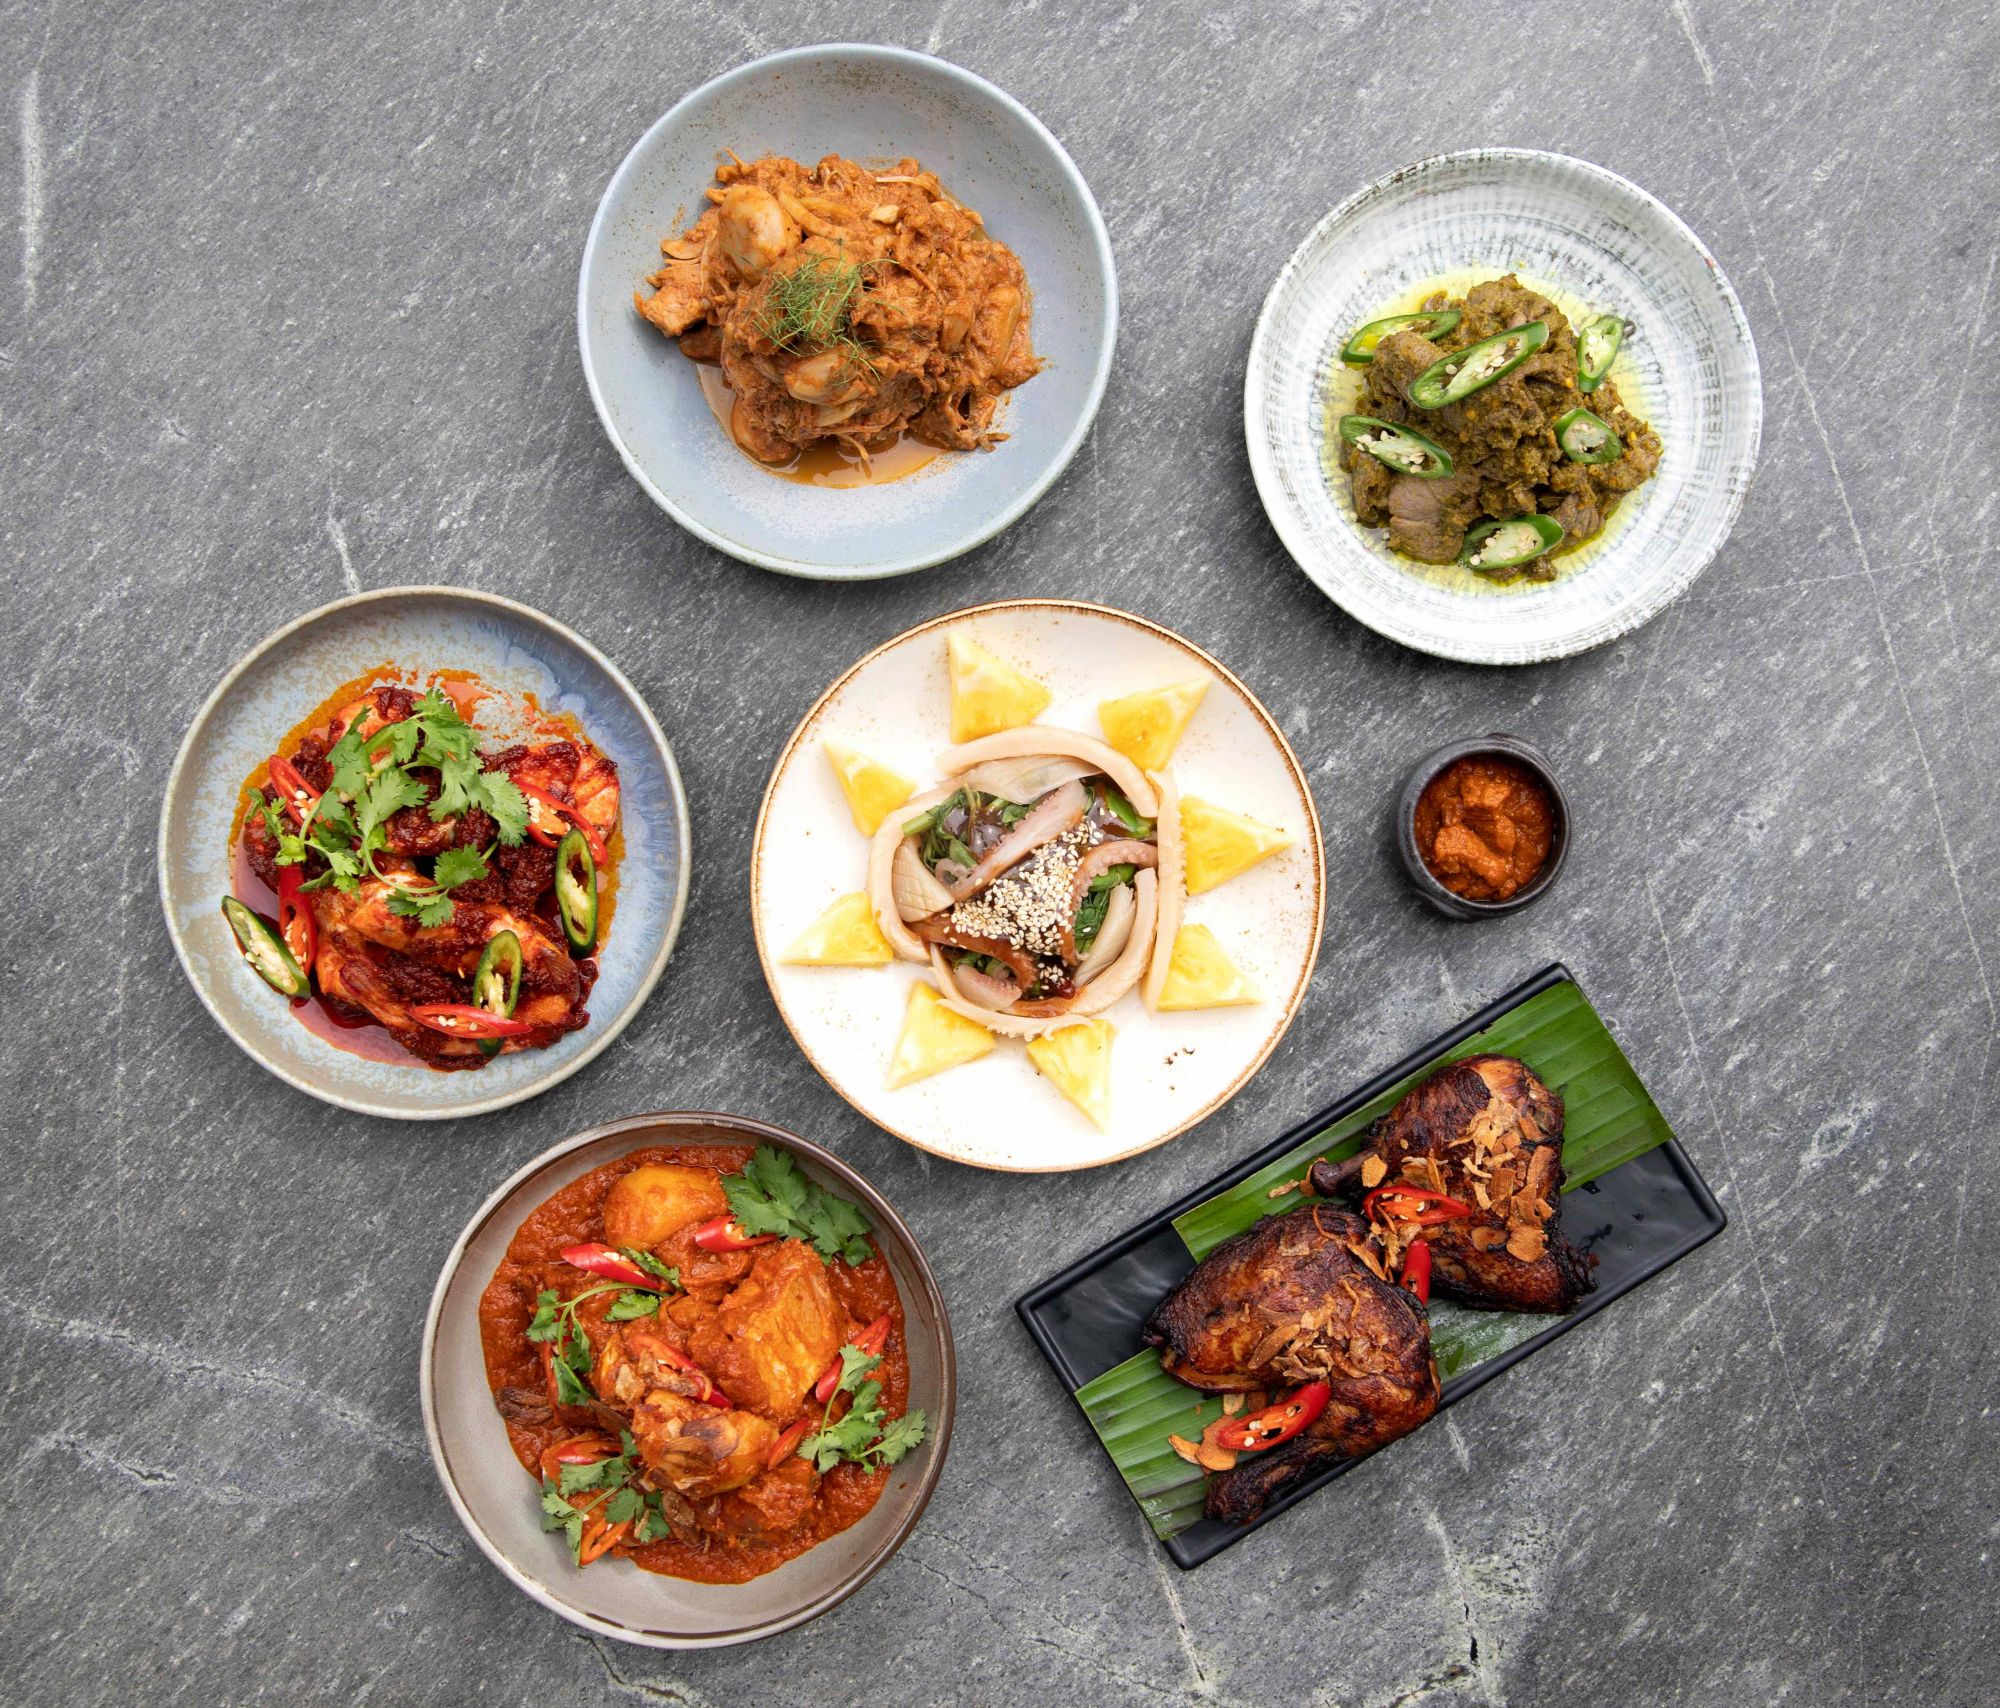 Restaurant Kin Adds More Singapore Heritage Dishes to Their Menu